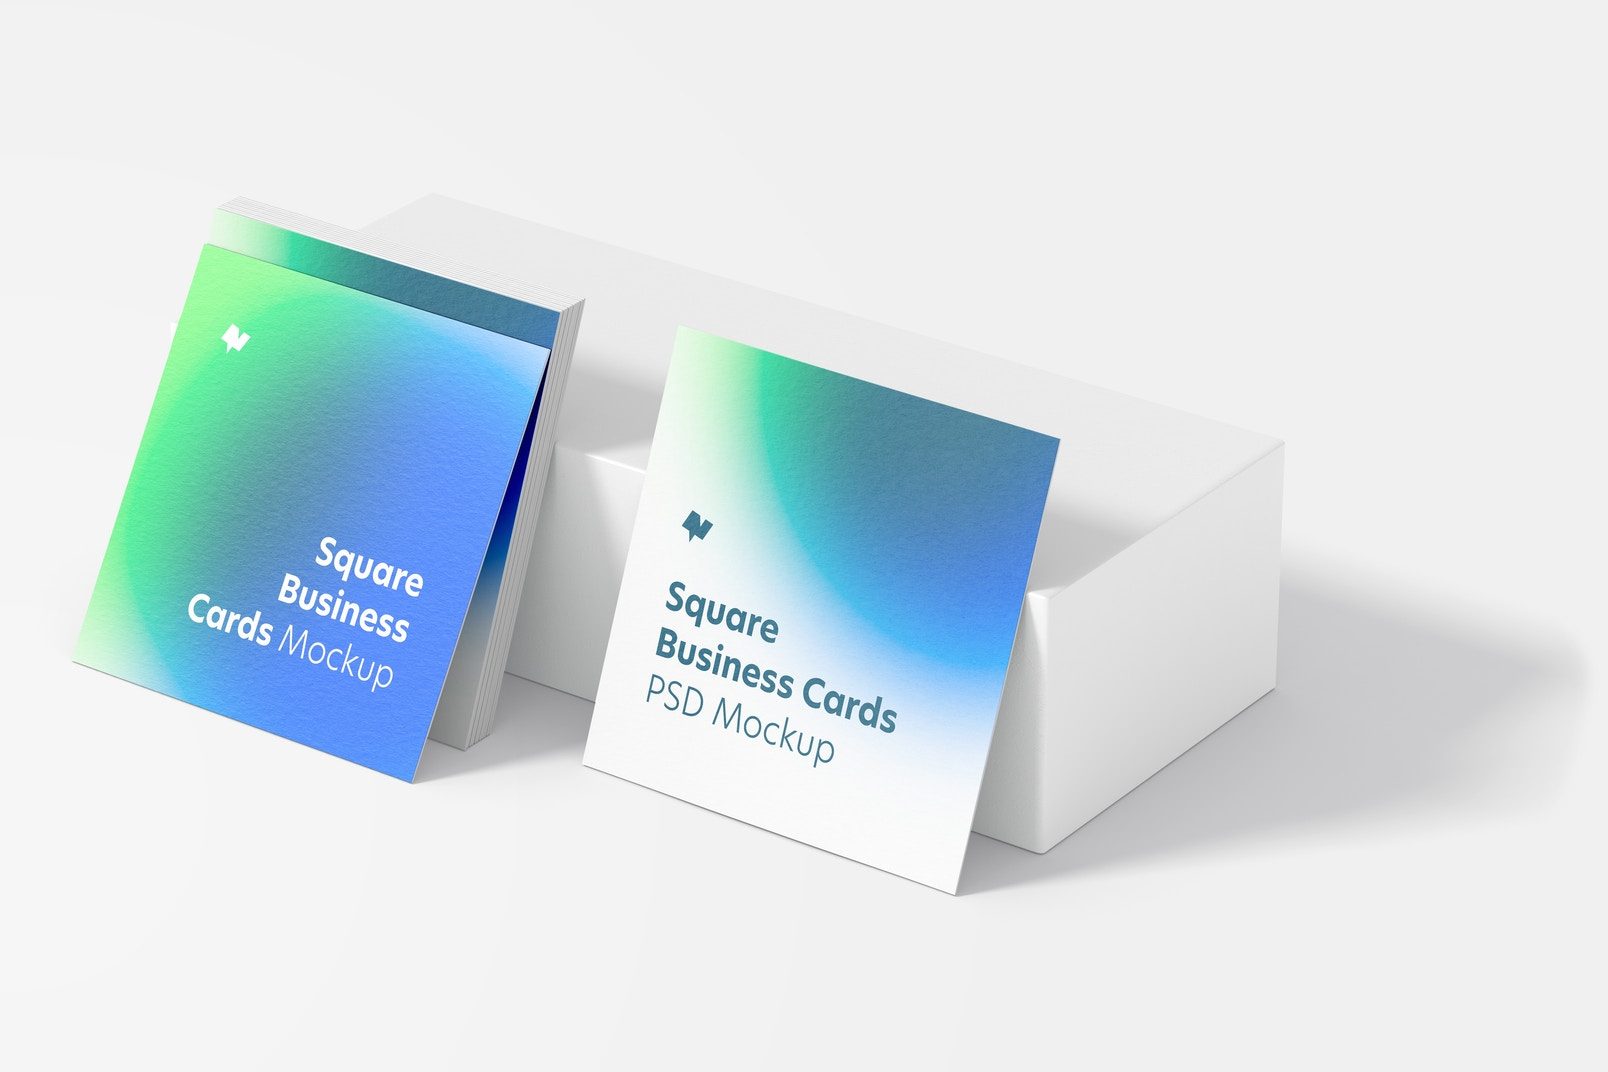 Square Business Cards Mockup, Perspective View